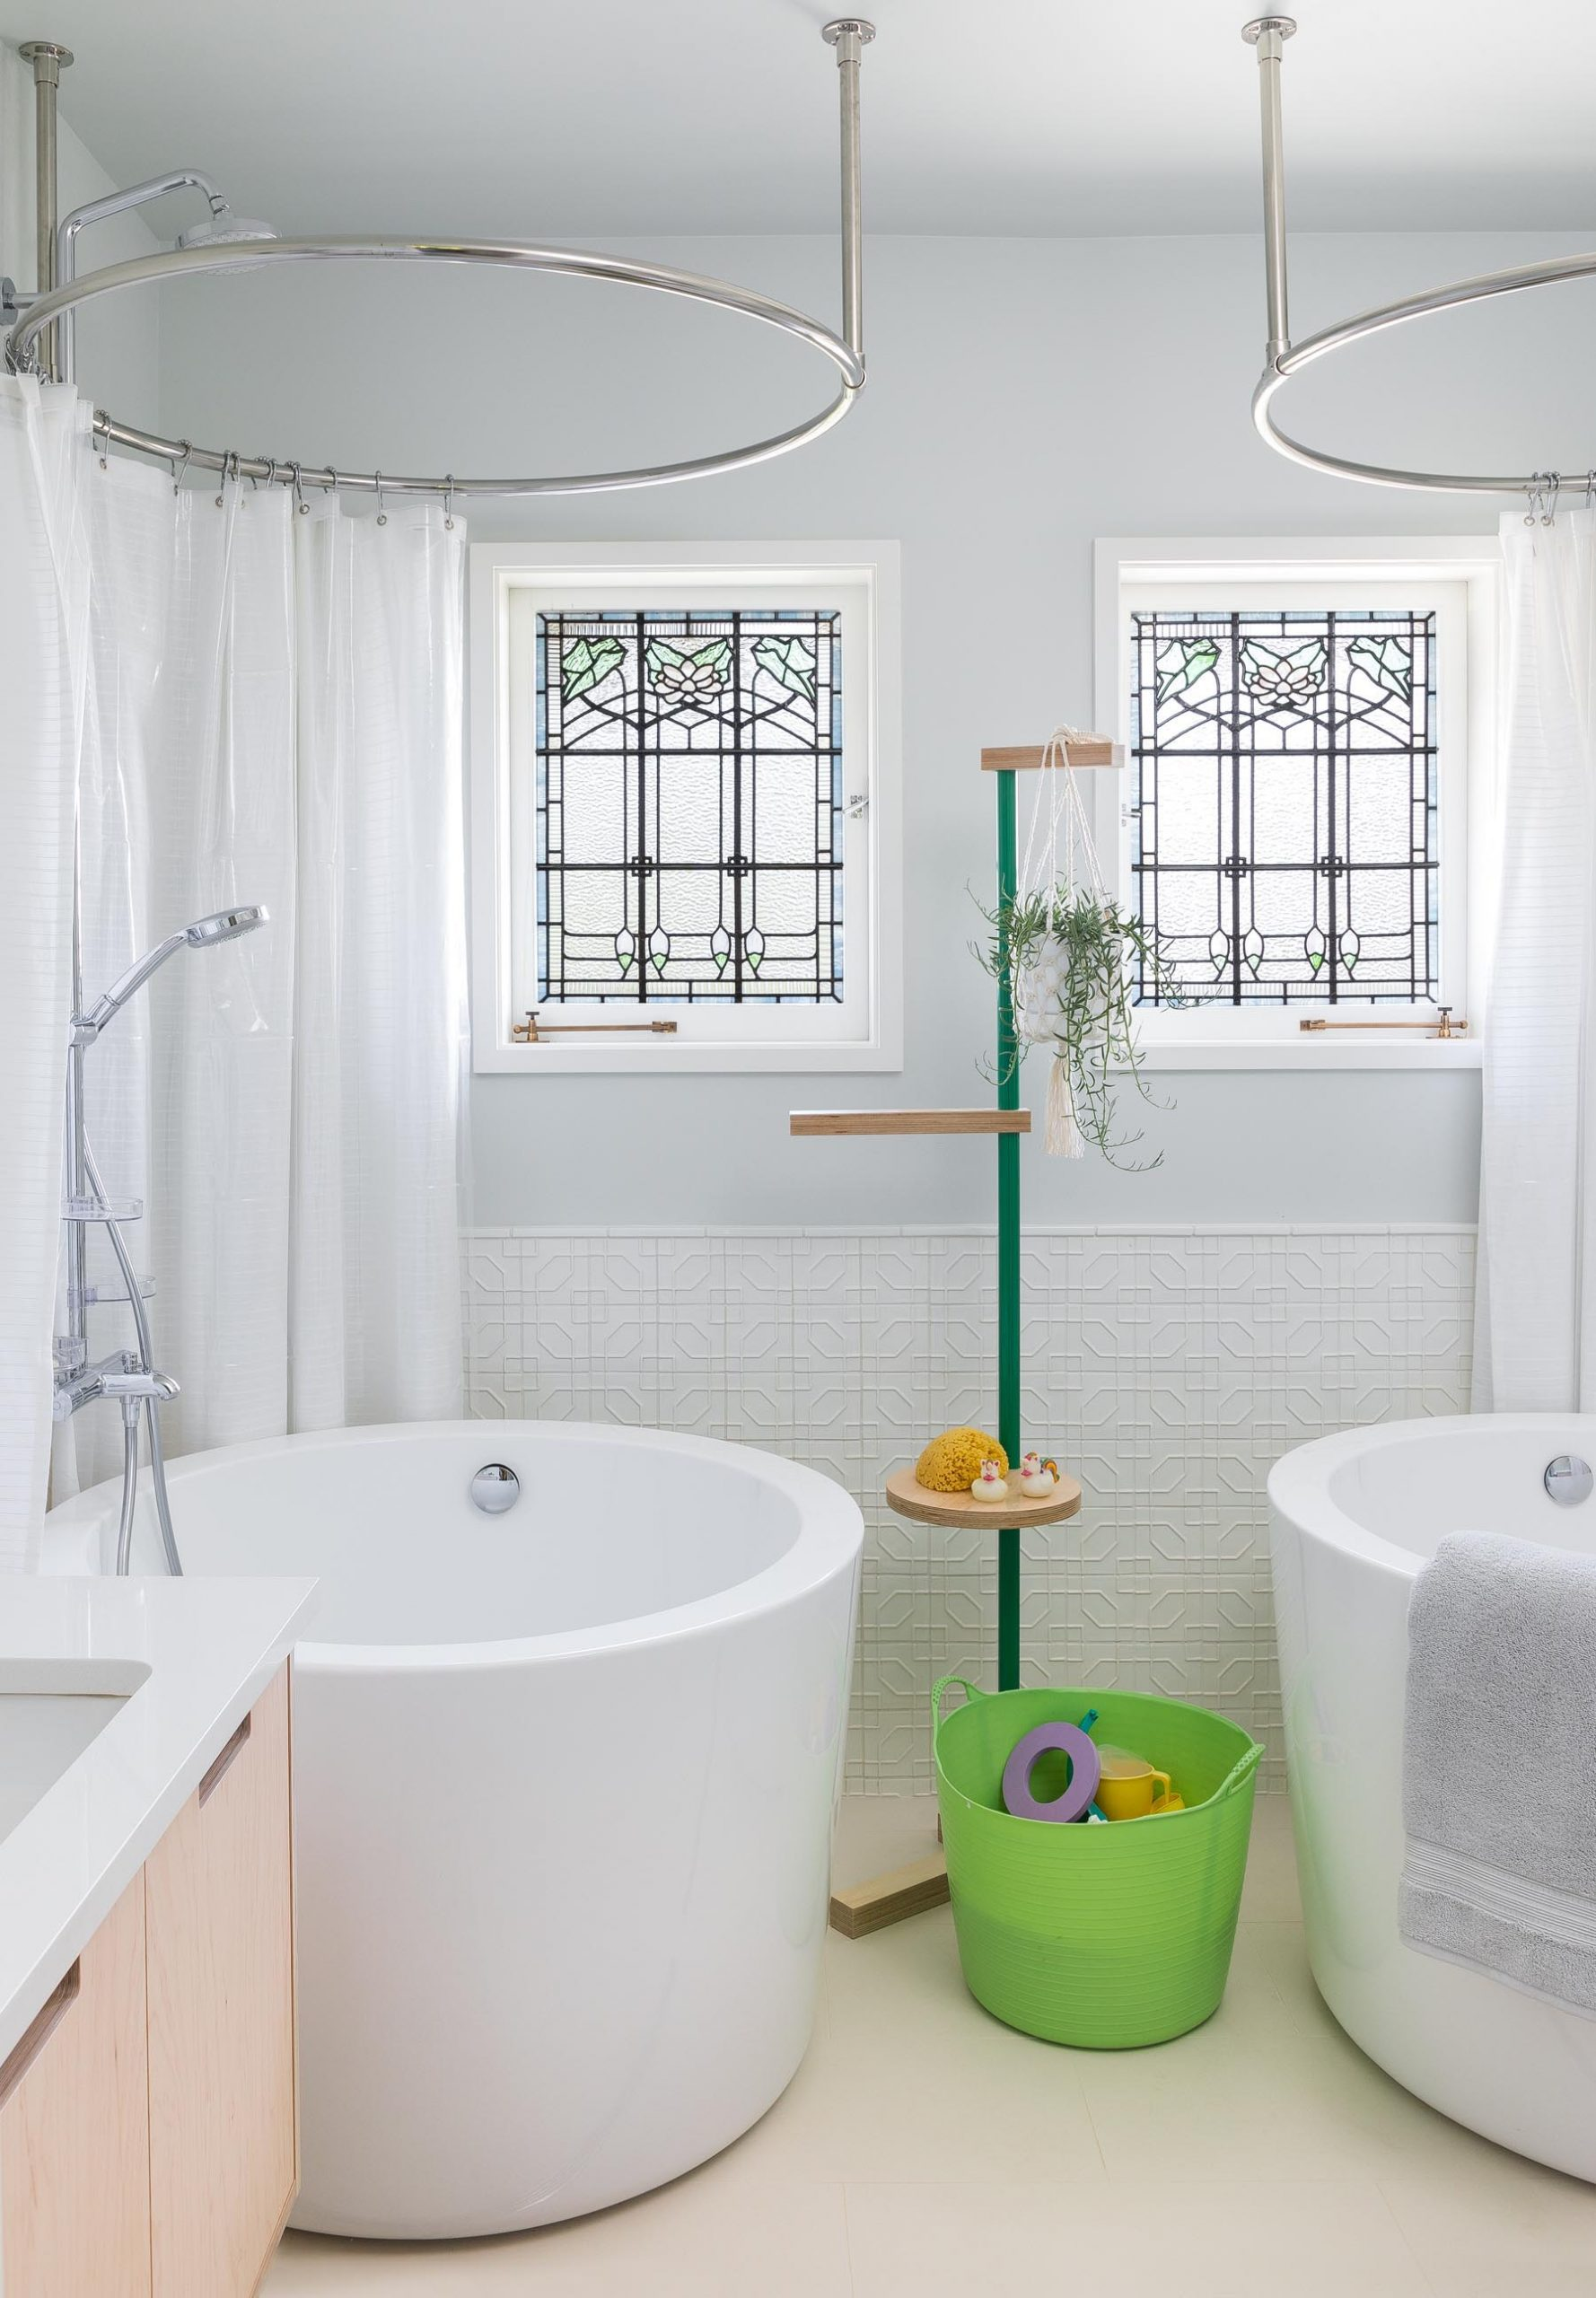 A remodeled bathroom with two deep soaking tubs, matching stained glass windows, tiles that cover the lower portion of the wall, and a plant stand that doubles as shelving.